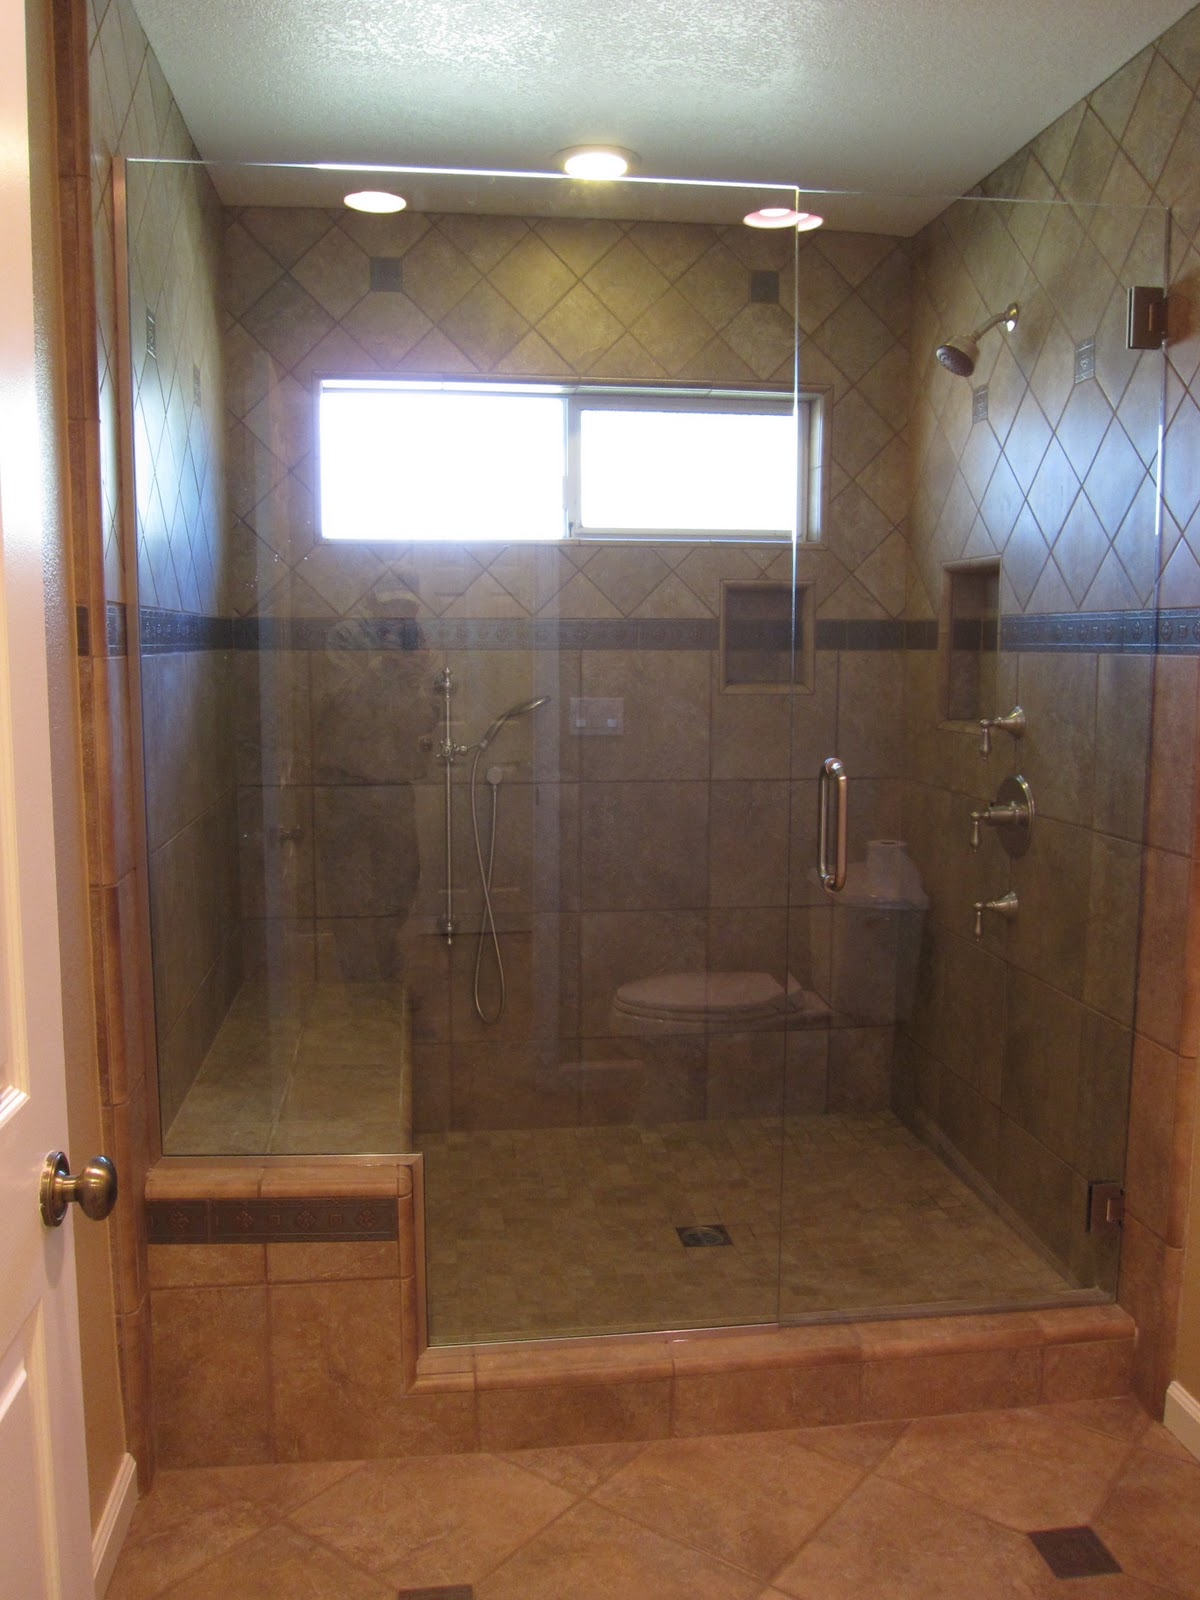 4 ft tub shower combo. Bathtub Shower Doors Tub Combo And Went With A Six Foot By Five  Walk Bathtub Shower Doors What To Wear Khaki Pants